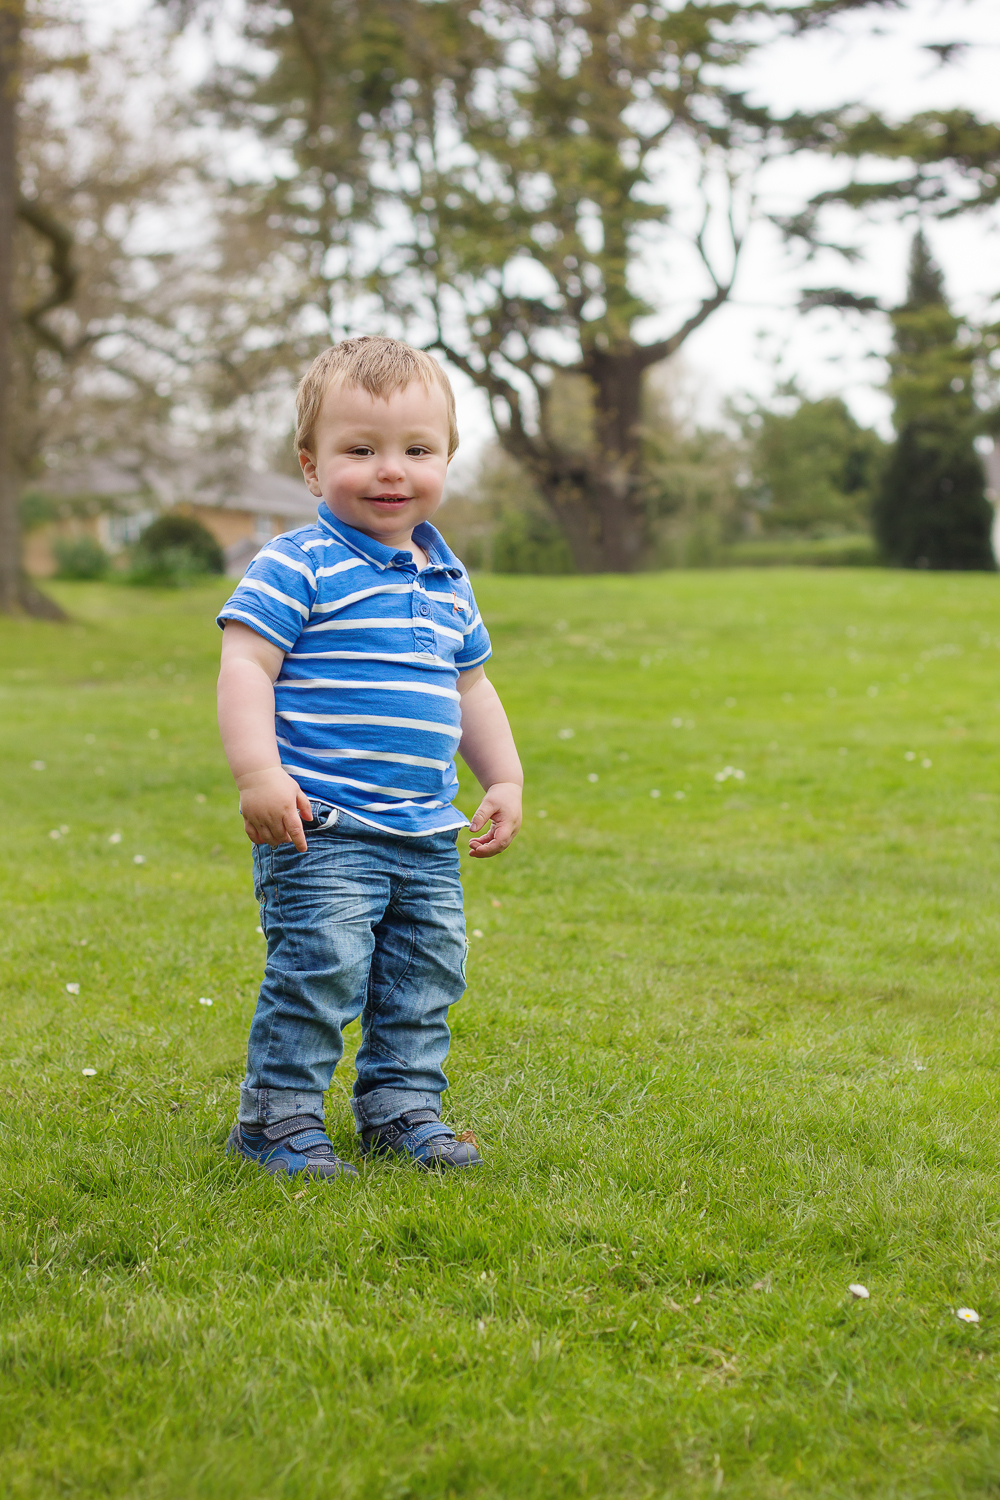 Little boy in jeans and a blue striped top having fun at an on-location photoshoot at the park